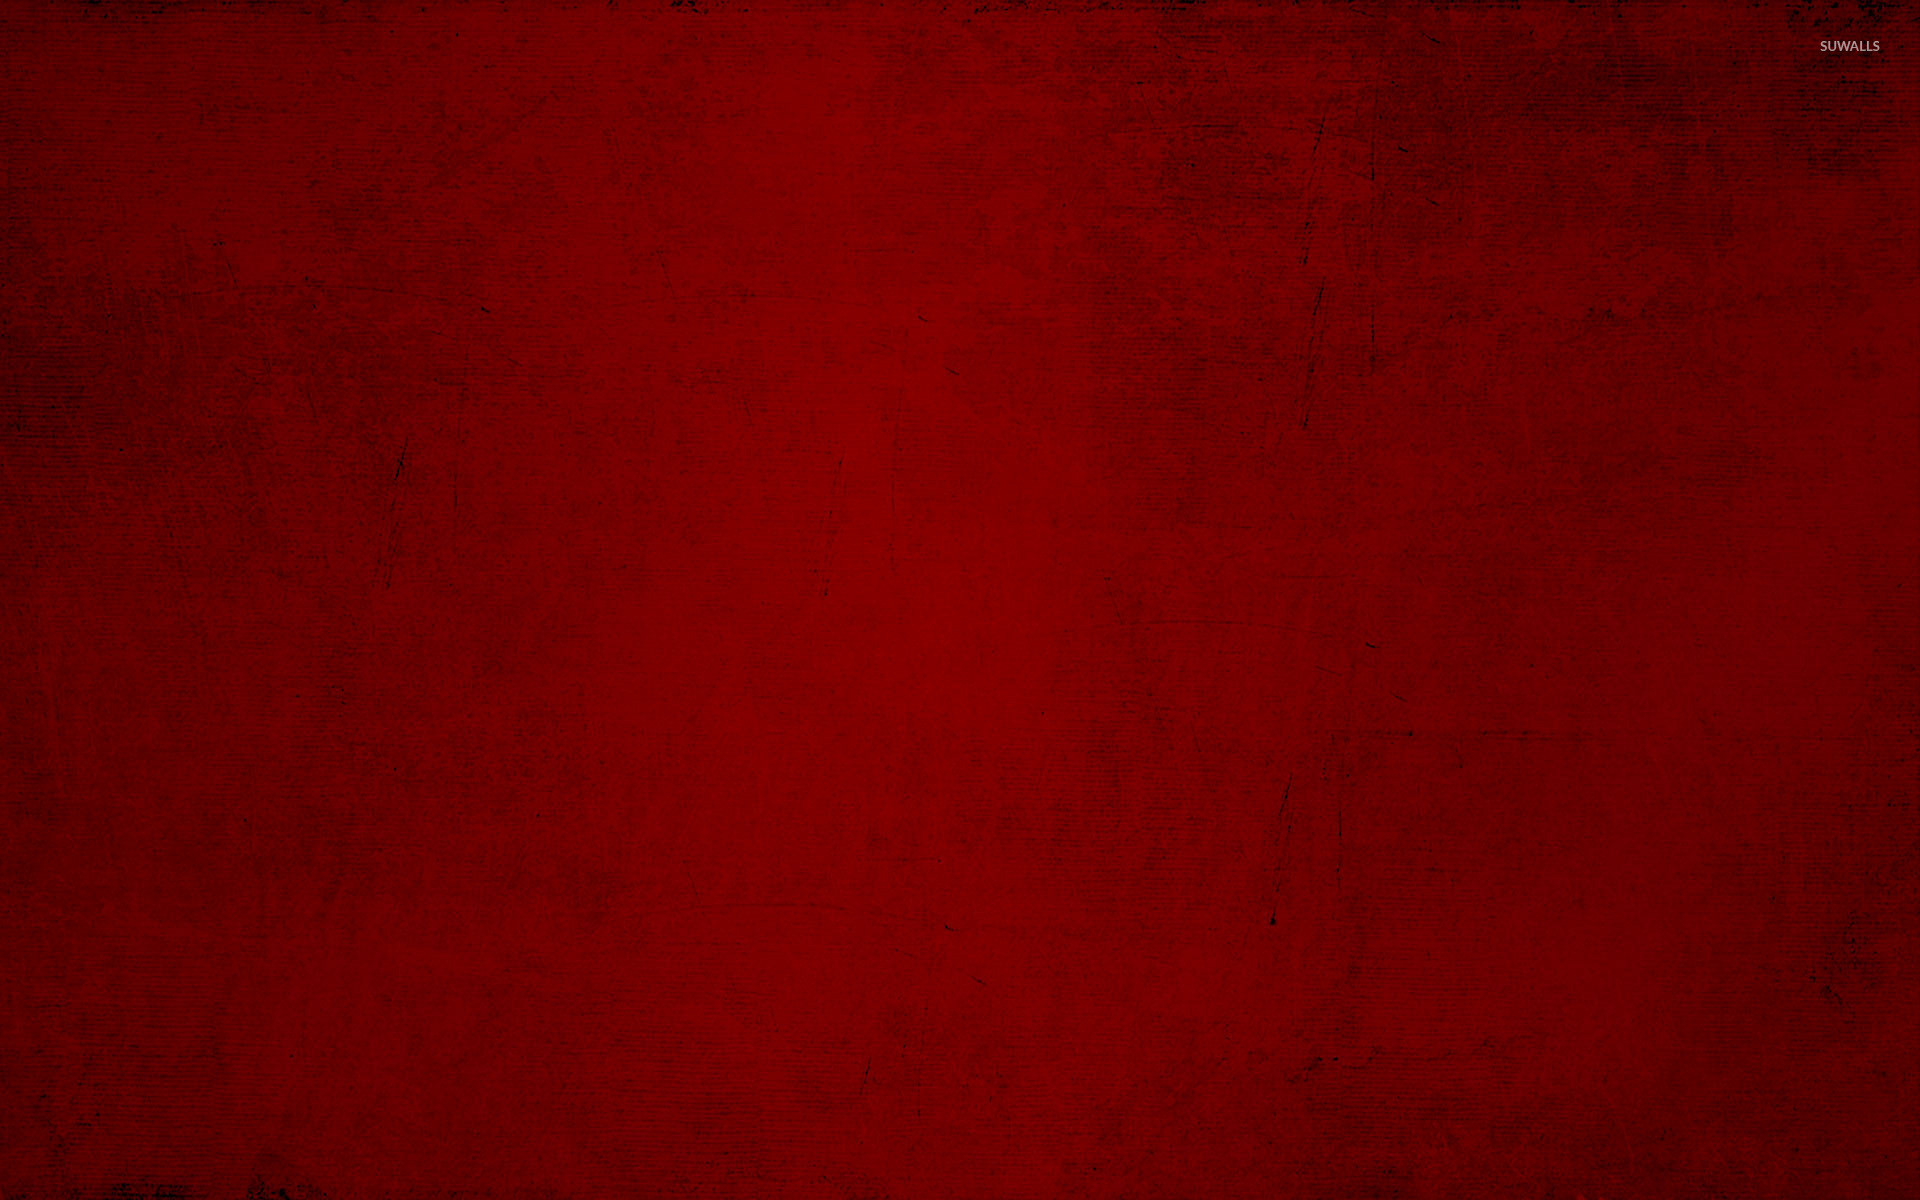 Grunge Red Wall Wallpaper Abstract Wallpapers #16453 #4261